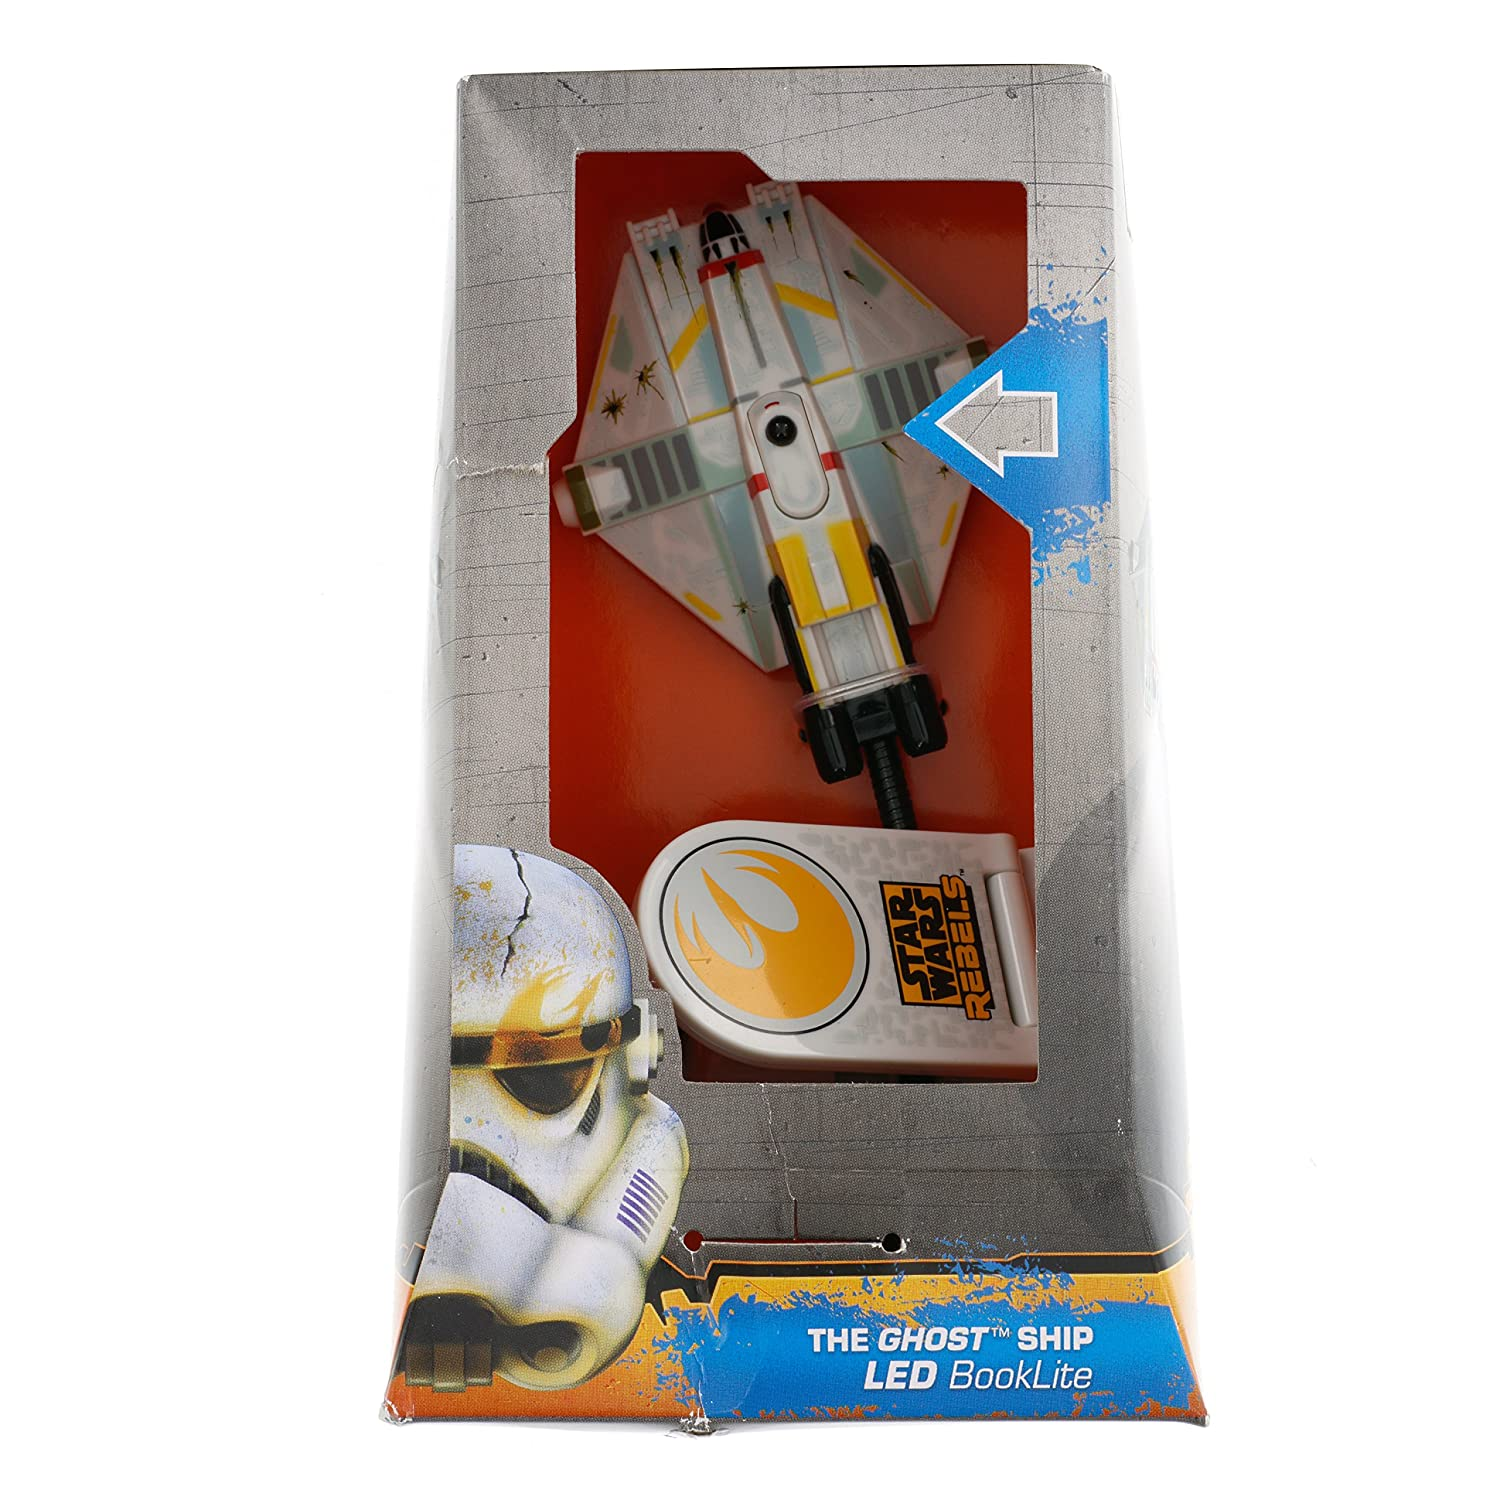 star wars rebels the ghost ship booklite led book